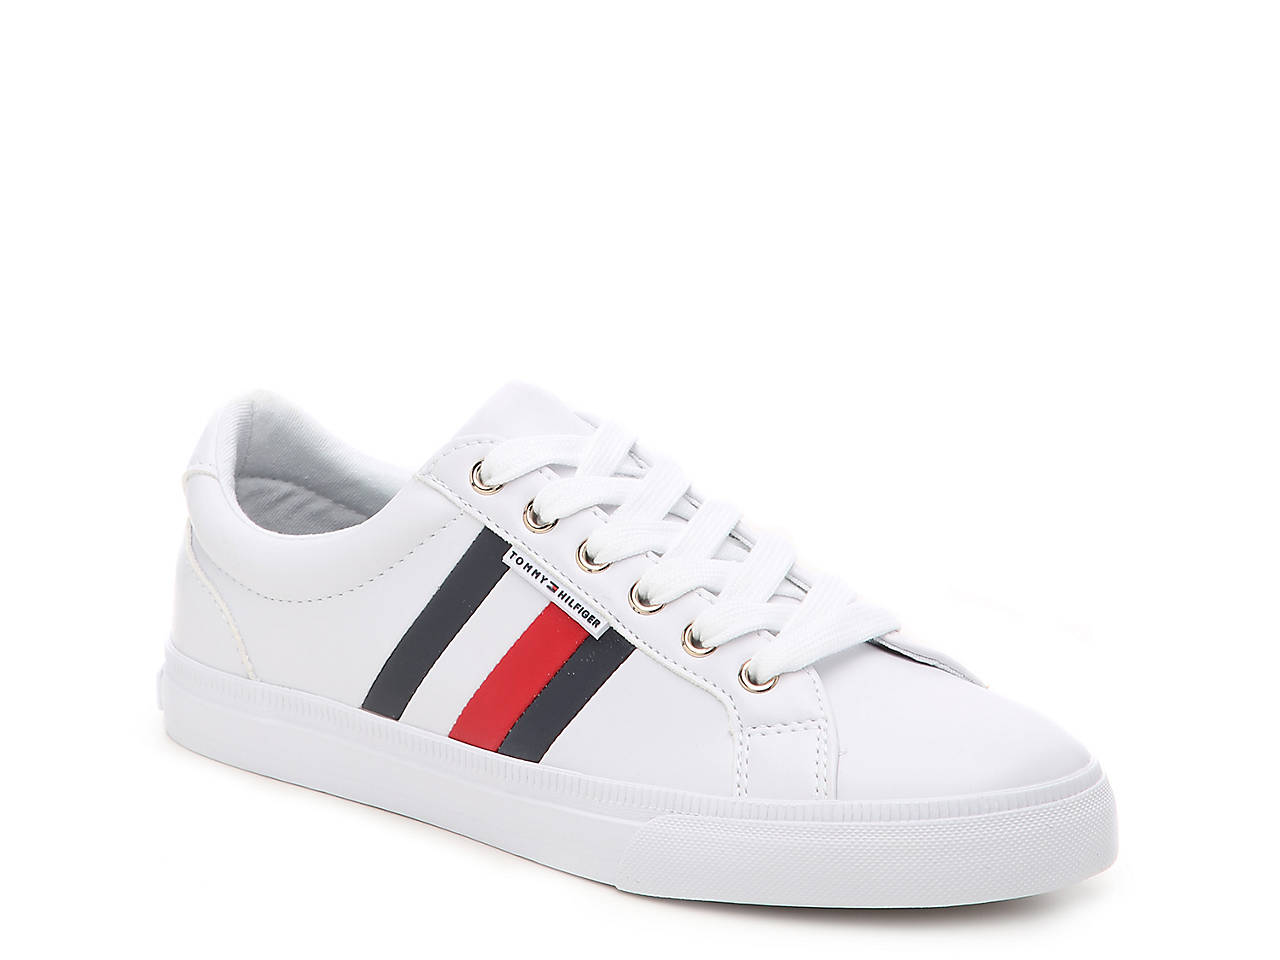 Tommy Hilfiger Lightz Sneaker Women s Shoes  09ed339d3d2e3